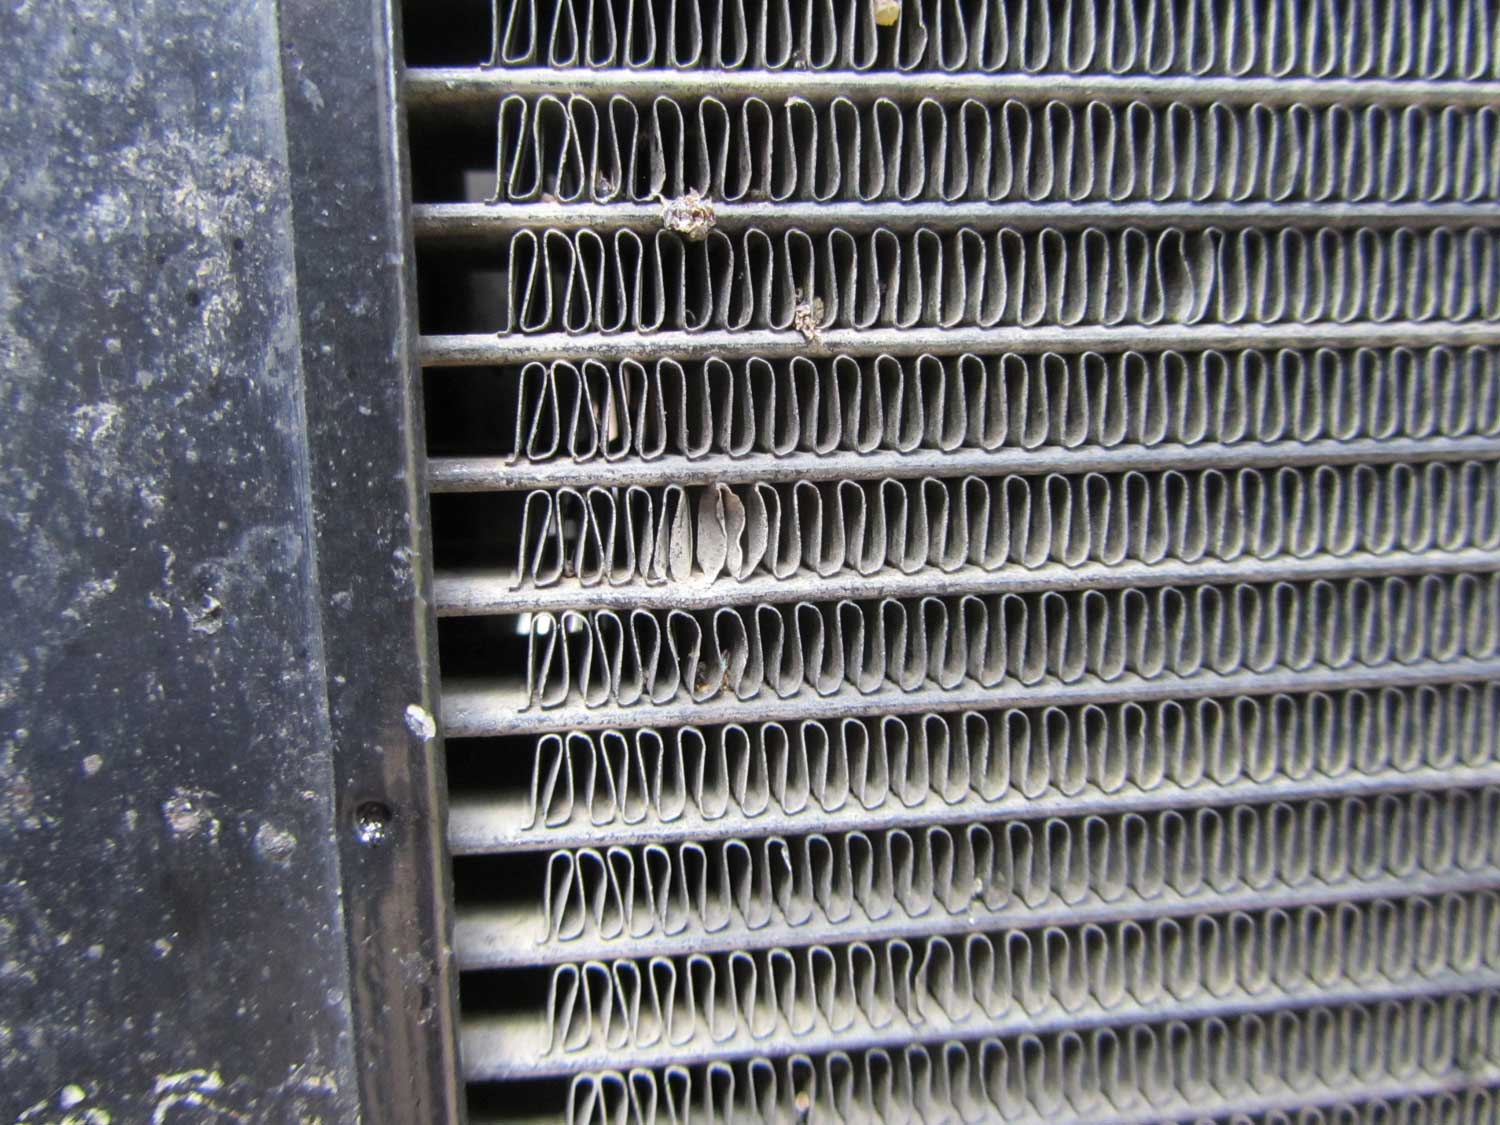 Damage that occurred before fitting the R&G radiator guard